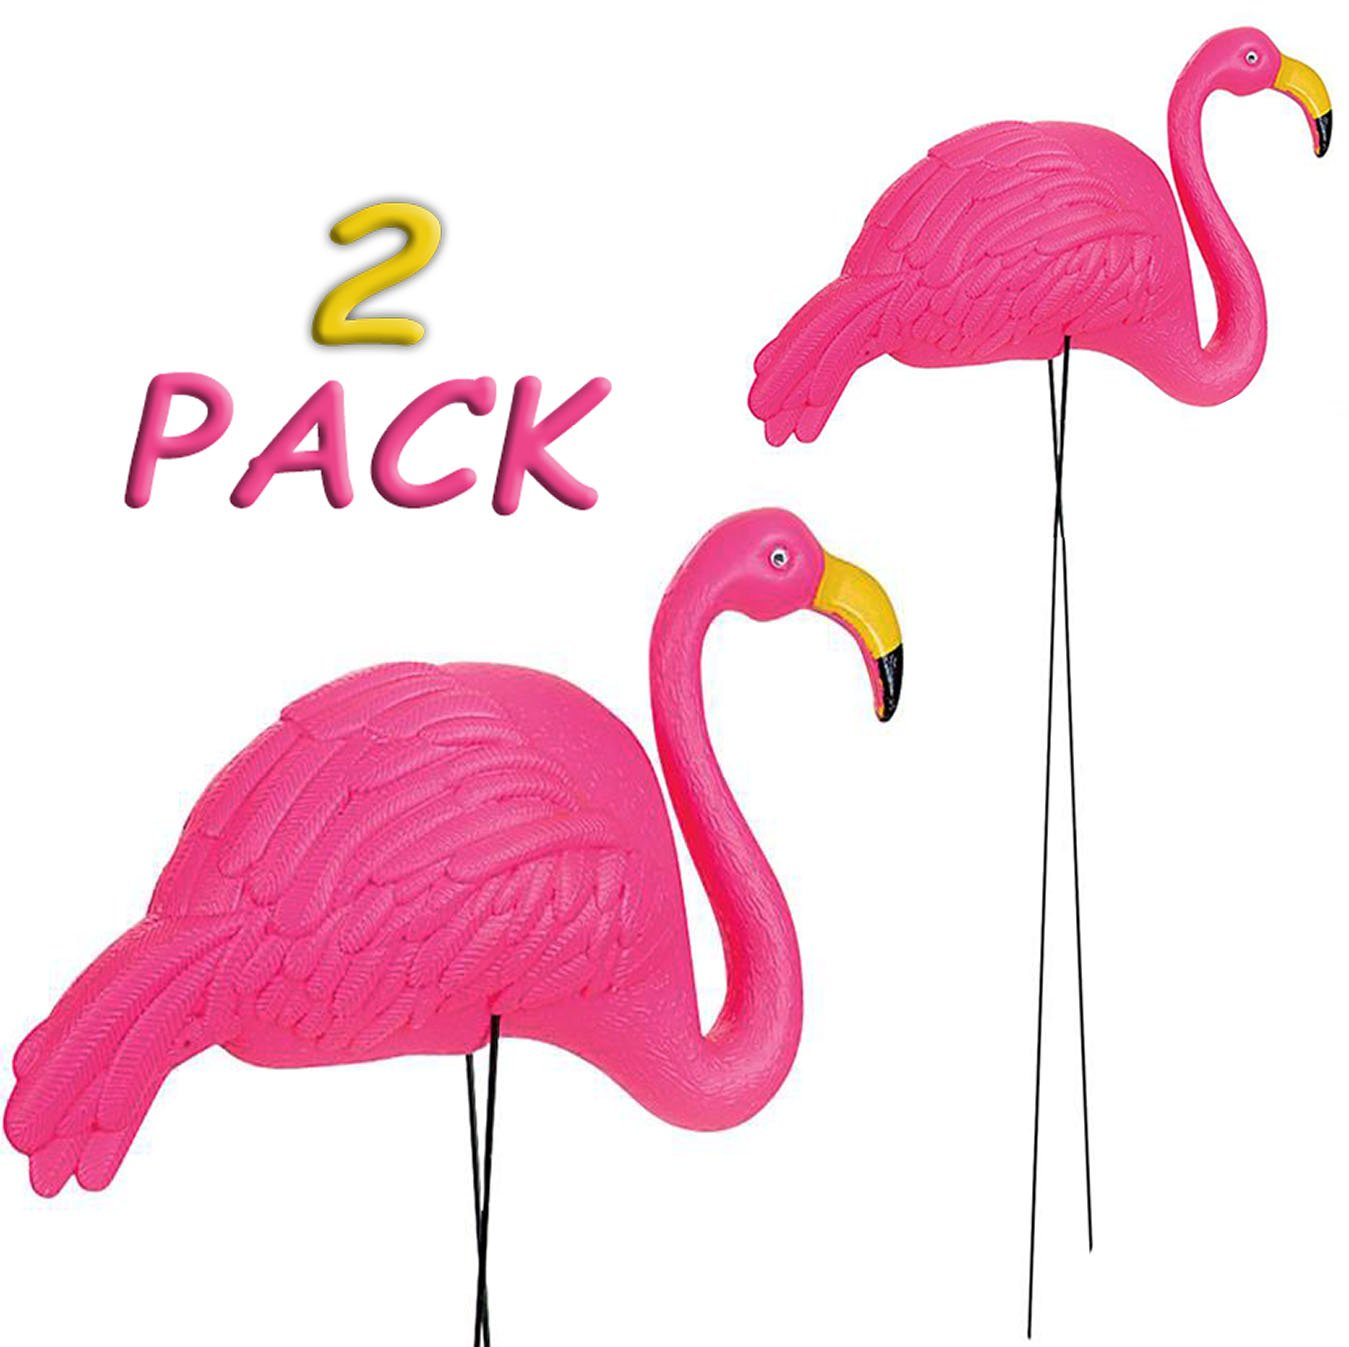 4E's Novelty Pack of 2 34'' Flamingo Yard Lawn Ornaments, Large Bright Pink Flamingos Outdoor Decor, By